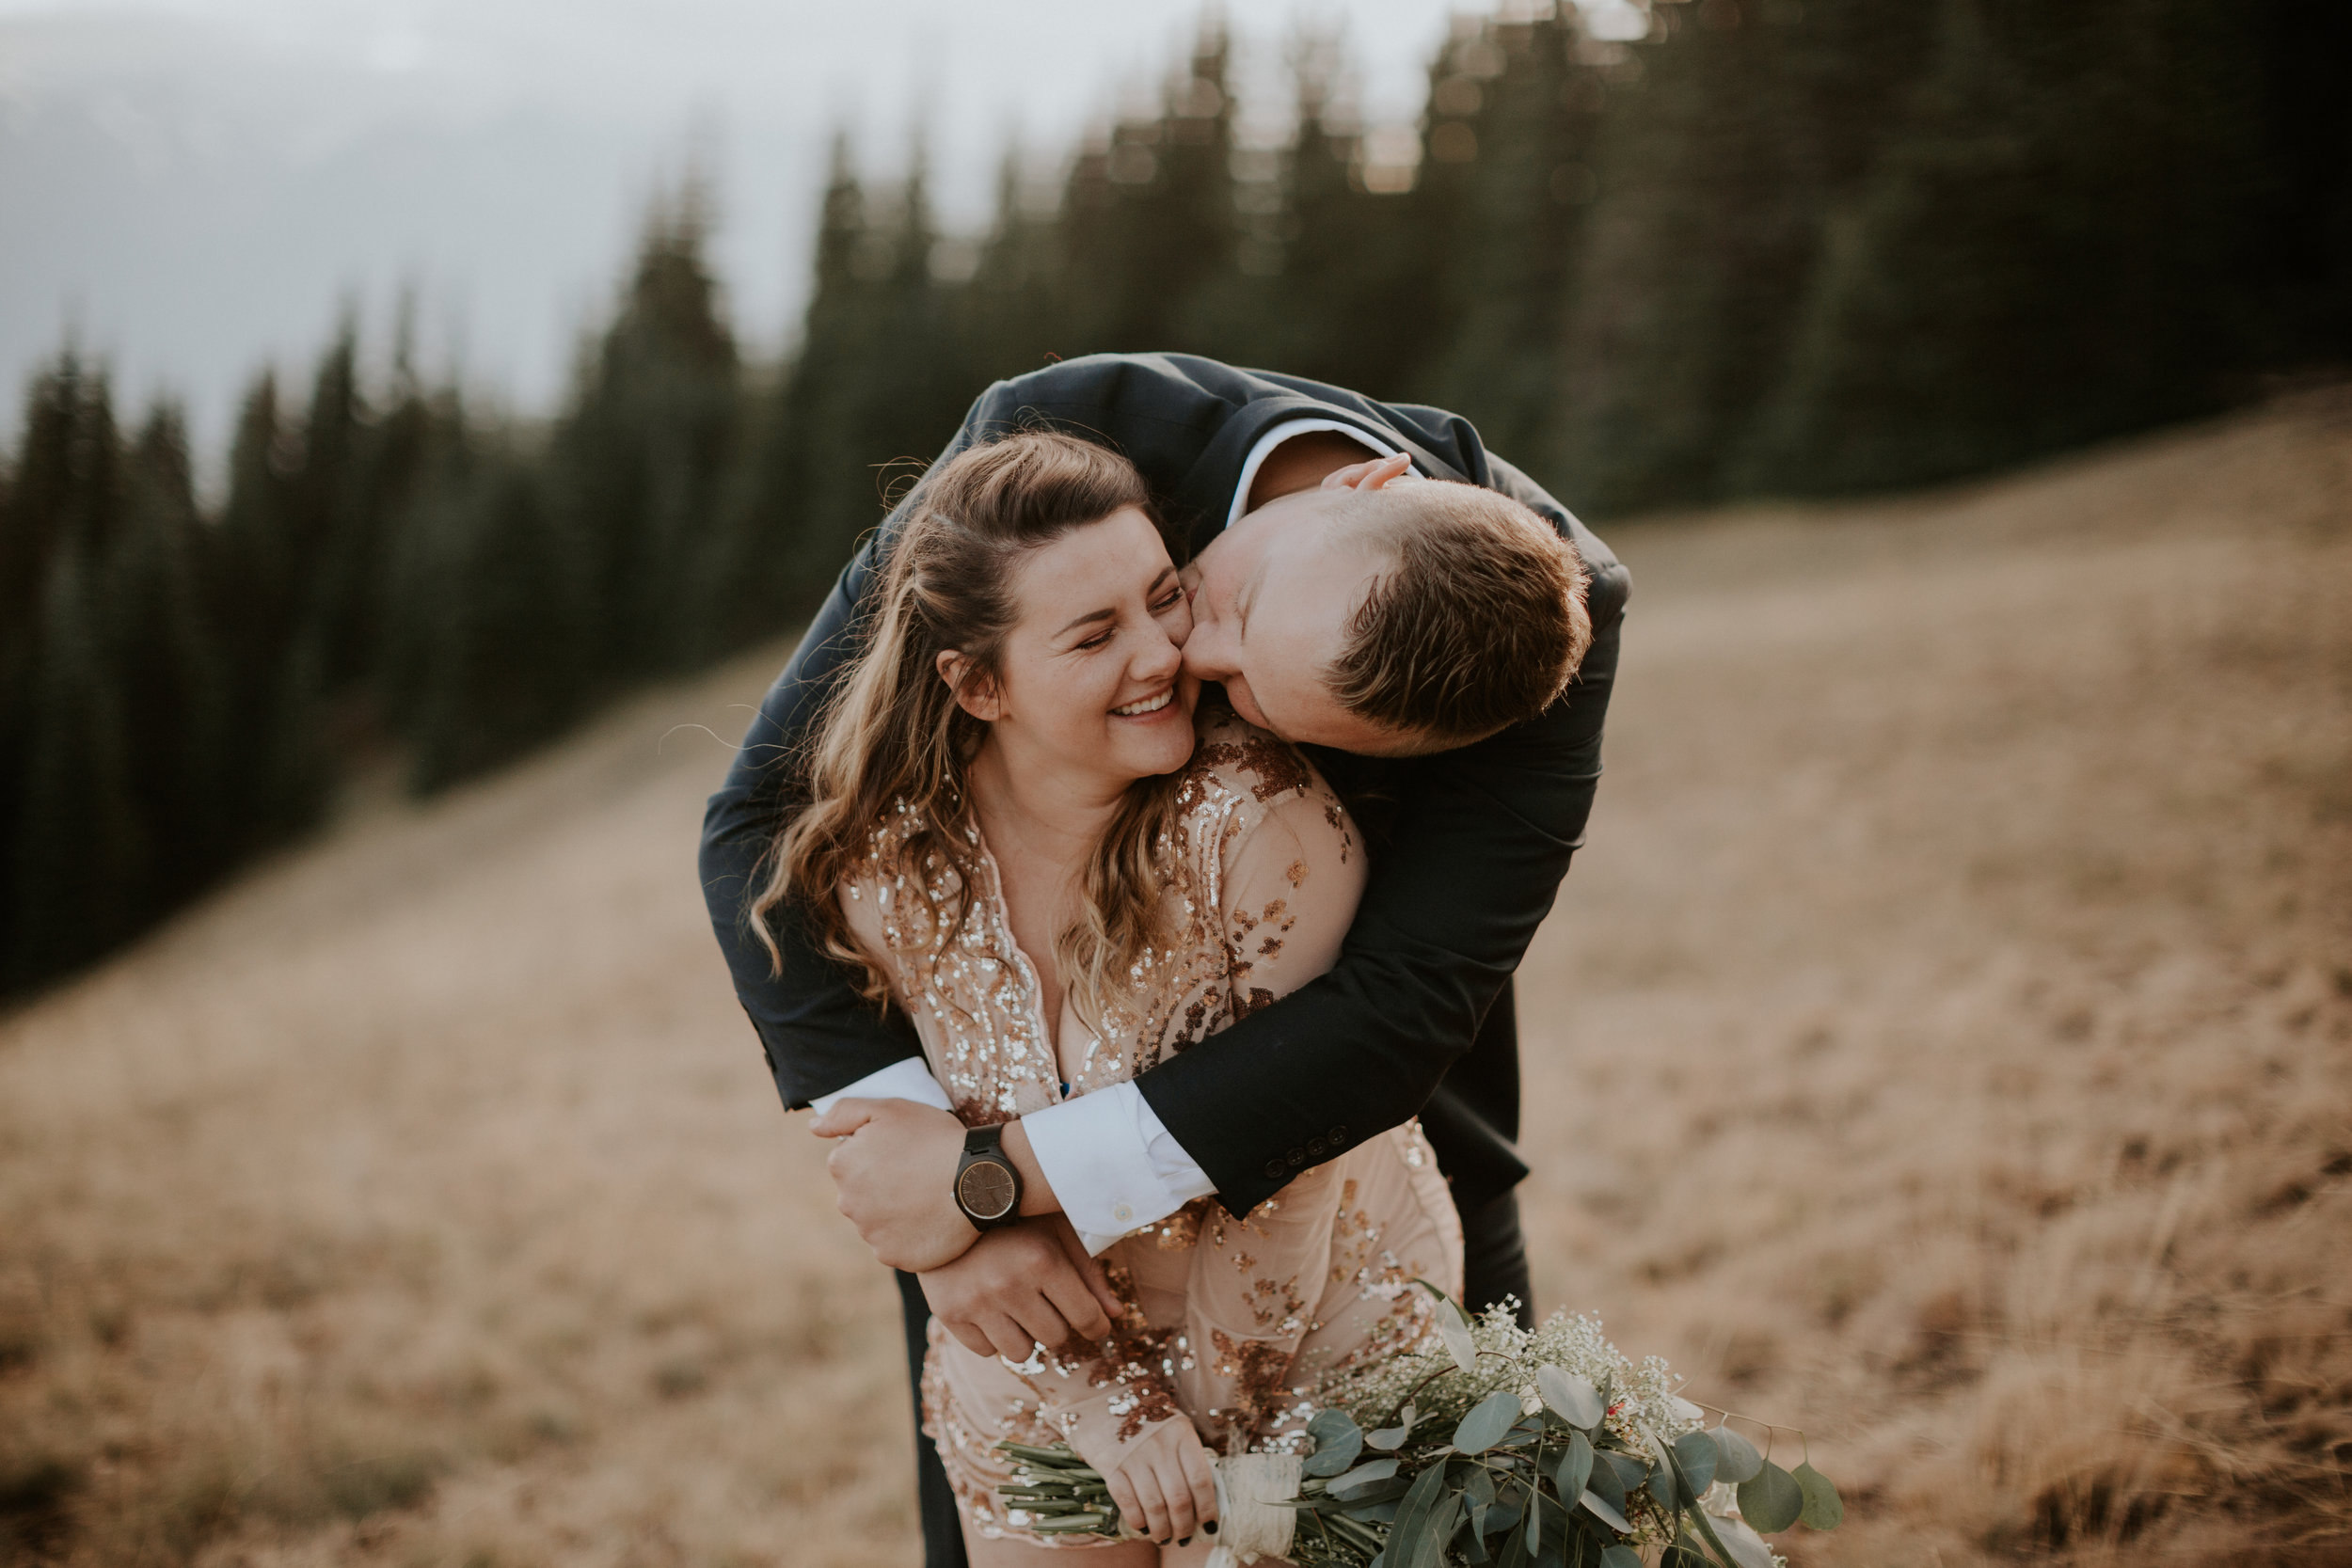 PNW-Hurricane-Ridge-Port-Angeles-Washington-elopement-photographer-kayla-dawn-photography-kayladawnphoto-wedding-anniversary-photoshoot-olympic-peninsula-282.jpg